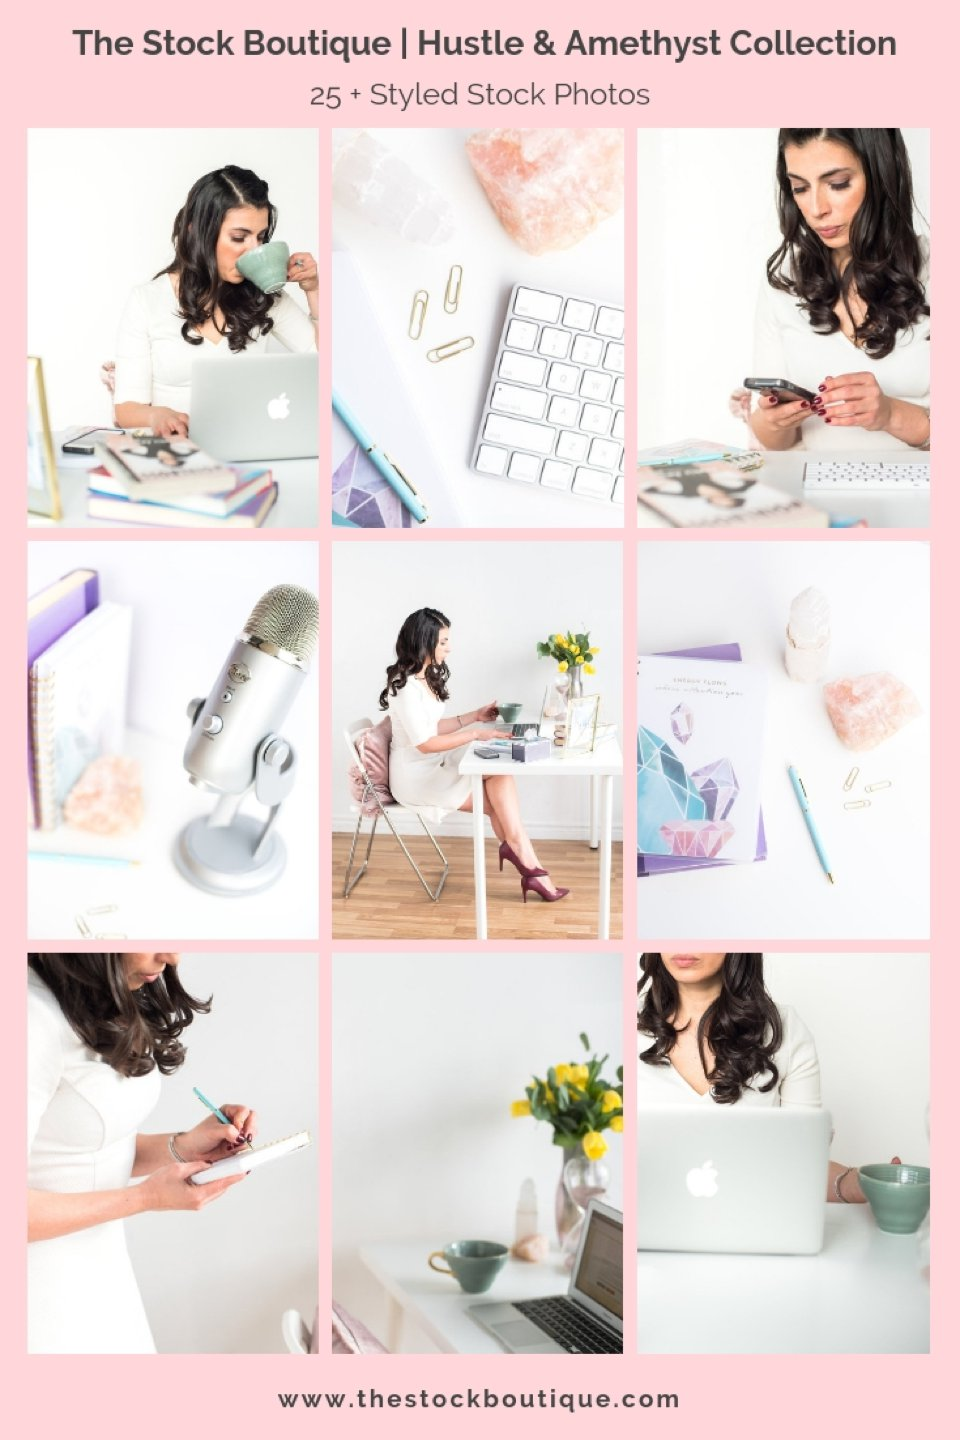 Female entrepreneur stock photos. We giveaway a styled stock photo every month when you subscribe! www.thestockboutique.com   #stockphoto     #styledstockphotos     #girlboss     #femaleentrepreneur